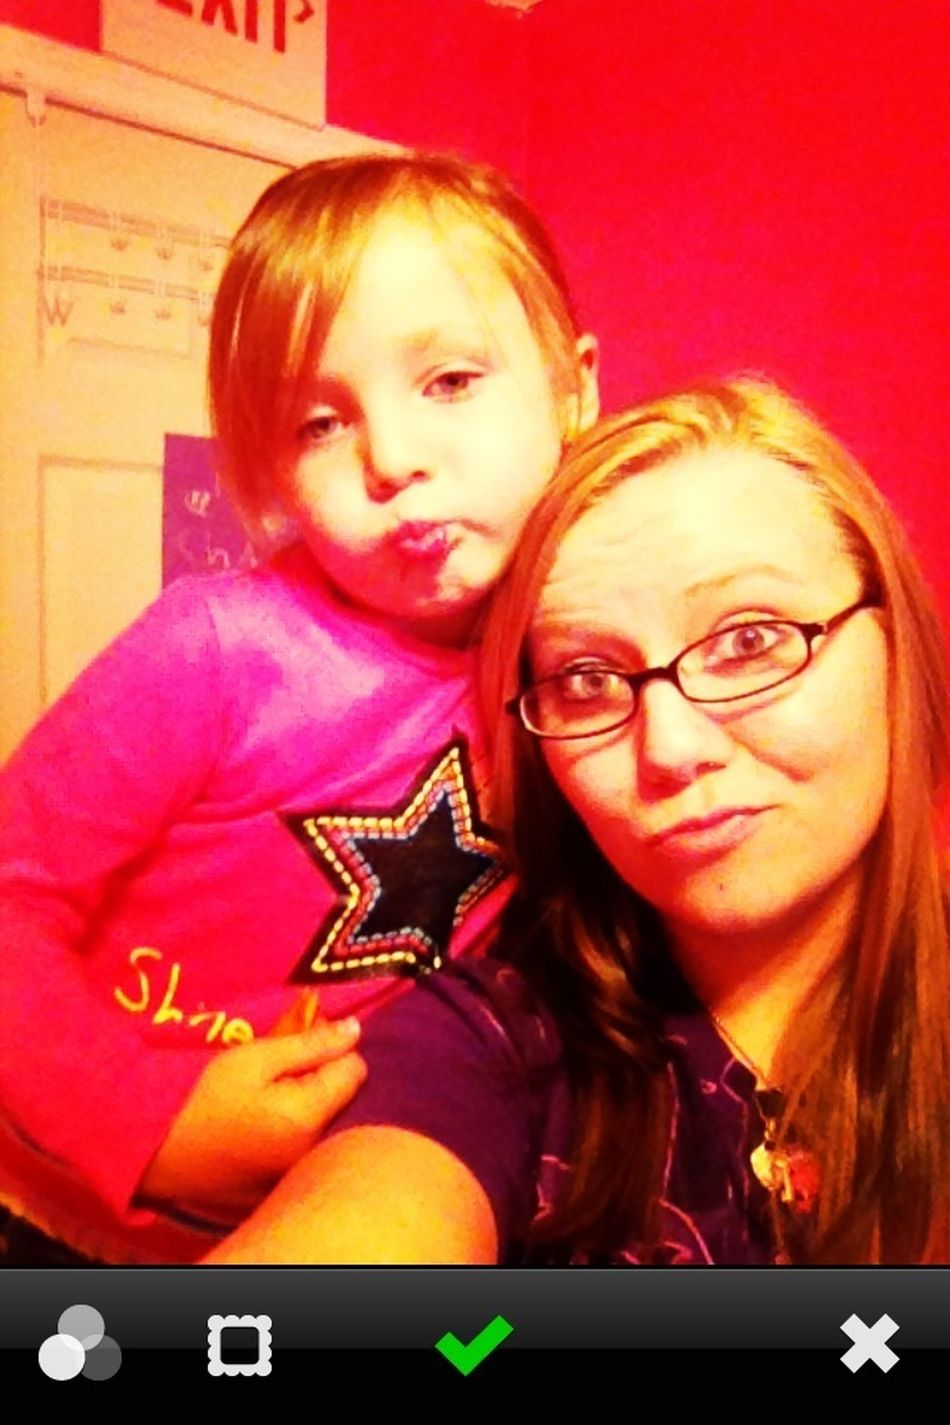 Silly Faces!